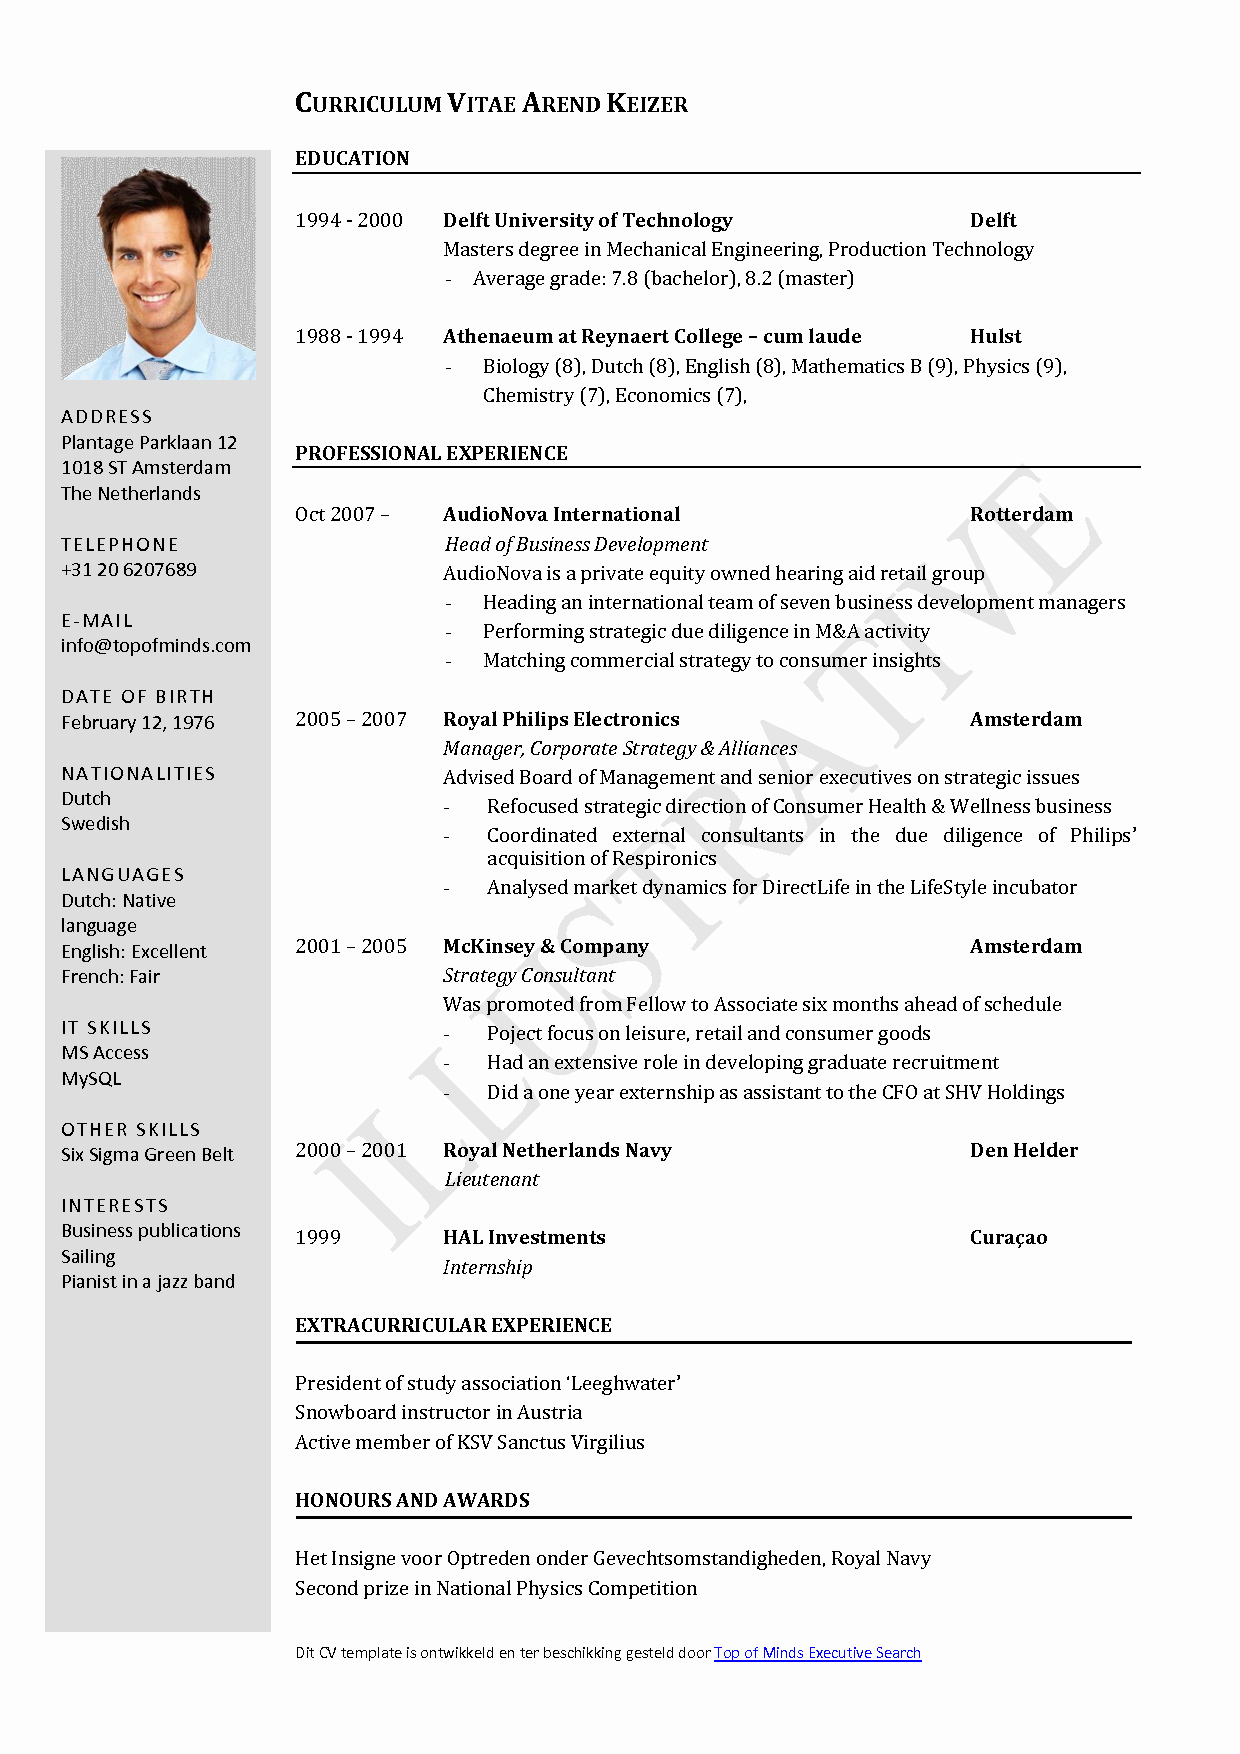 Free Resume Templates and Downloads Beautiful Free Curriculum Vitae Template Word